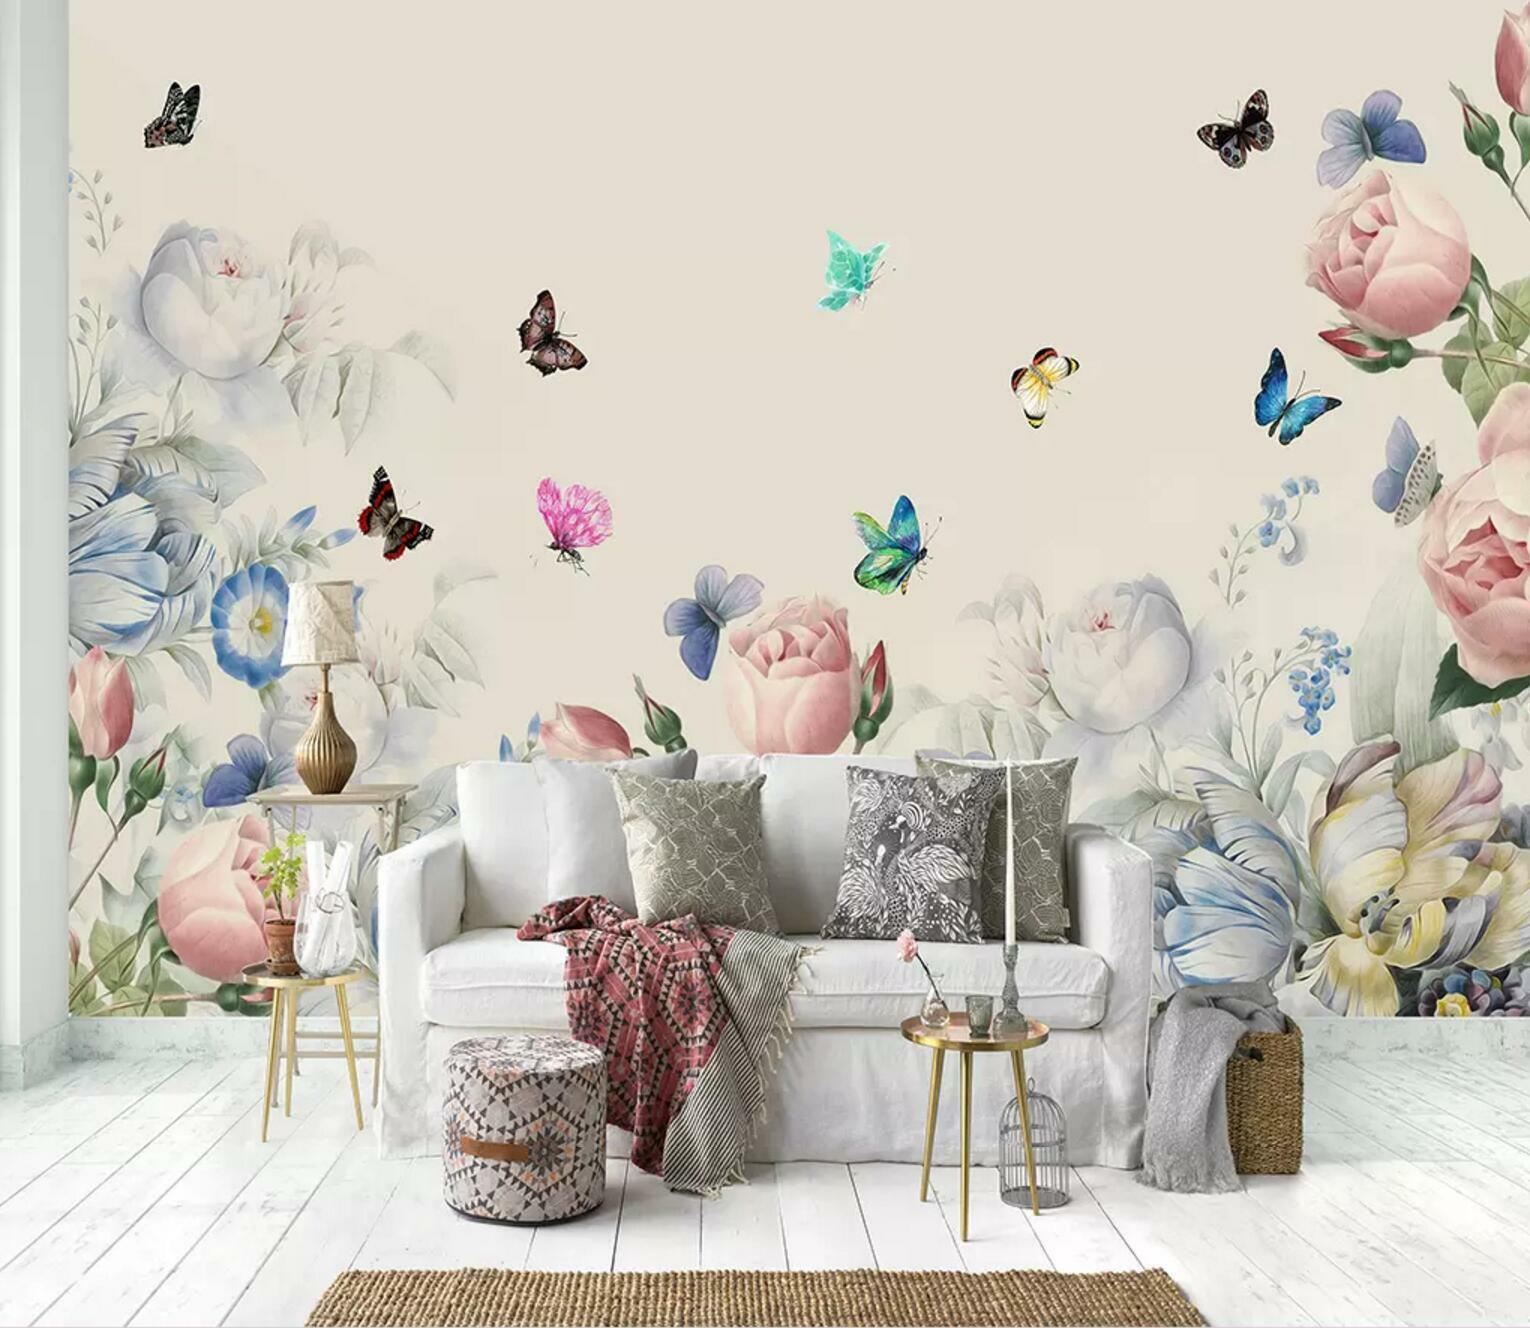 3D Roses Butterfly 45 Wall Paper Exclusive MXY Wallpaper Mural Decal Indoor wall